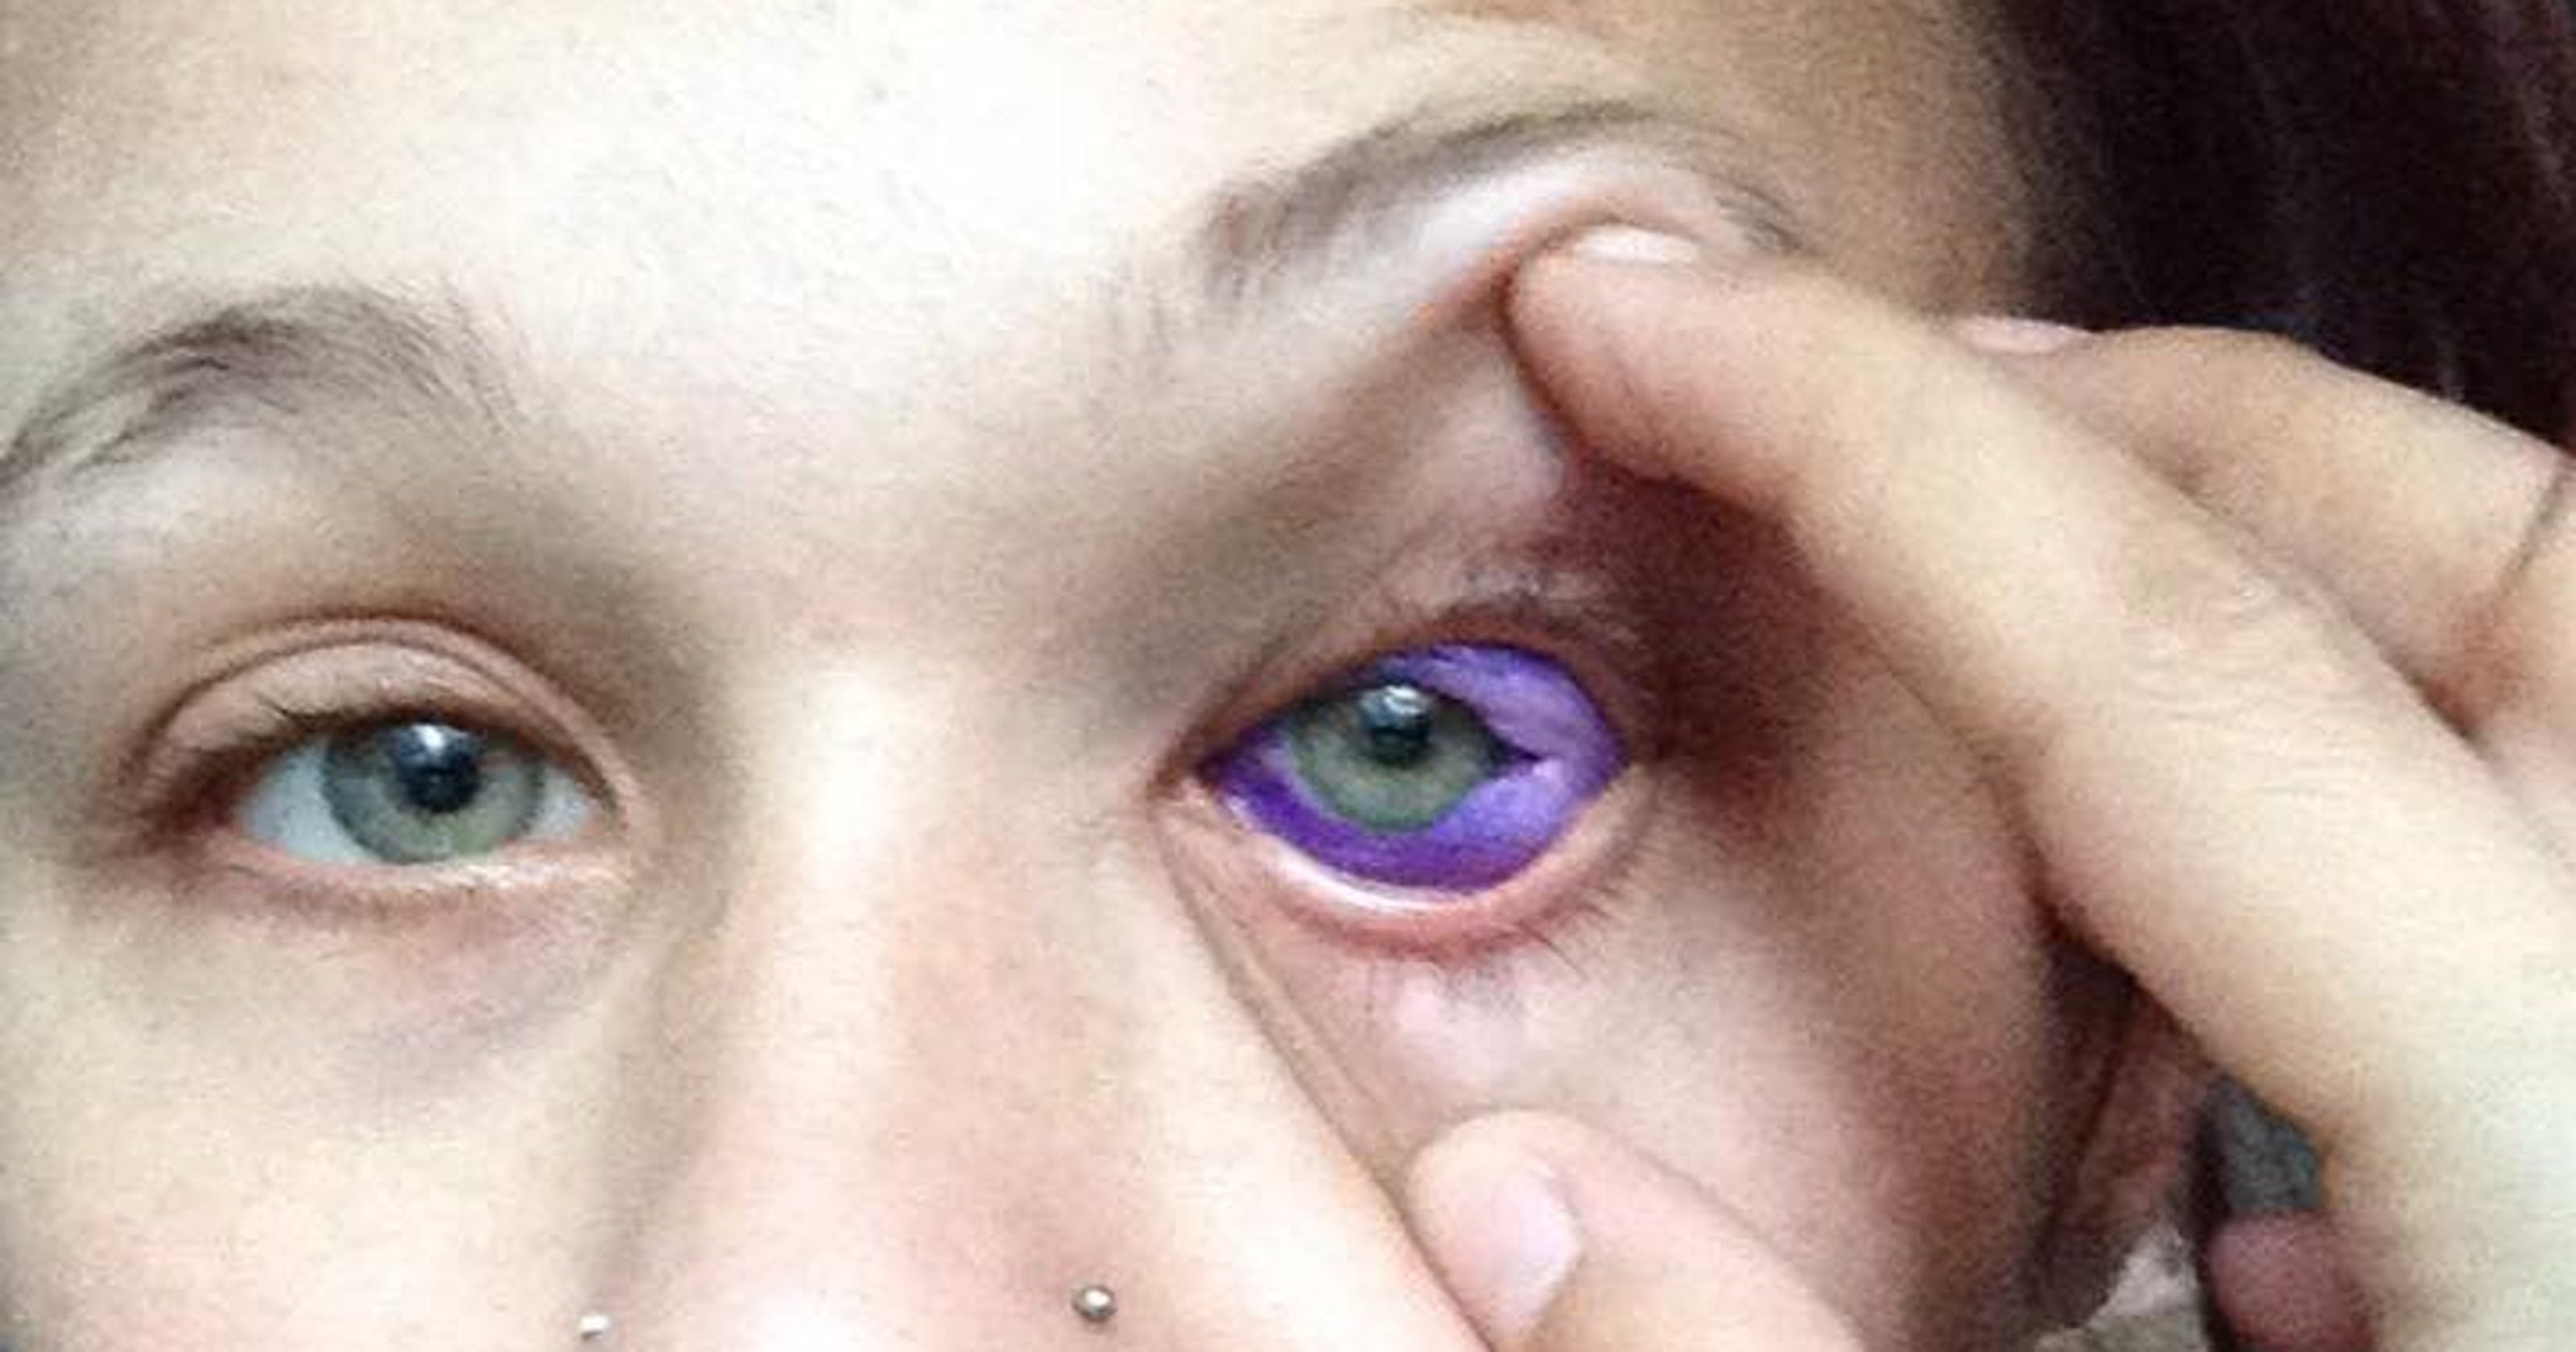 Sclera tattoo: Don't ink your eyeball  Just don't do it